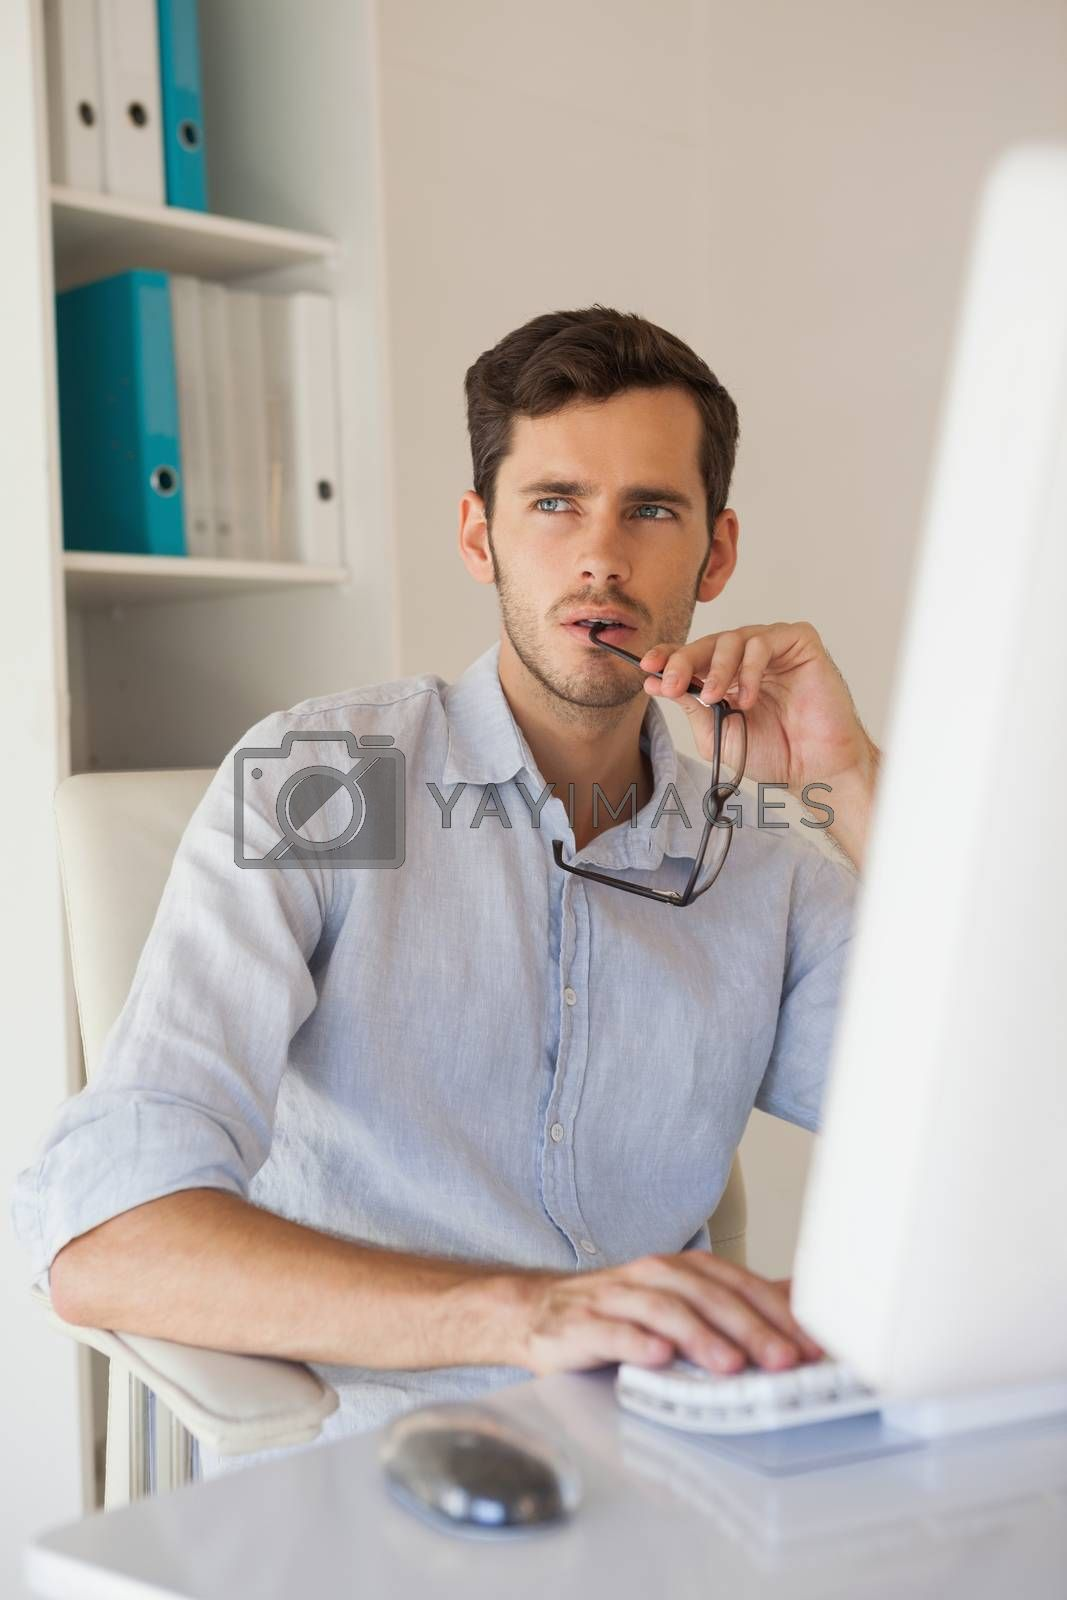 Royalty free image of Casual businessman thinking at his desk by Wavebreakmedia